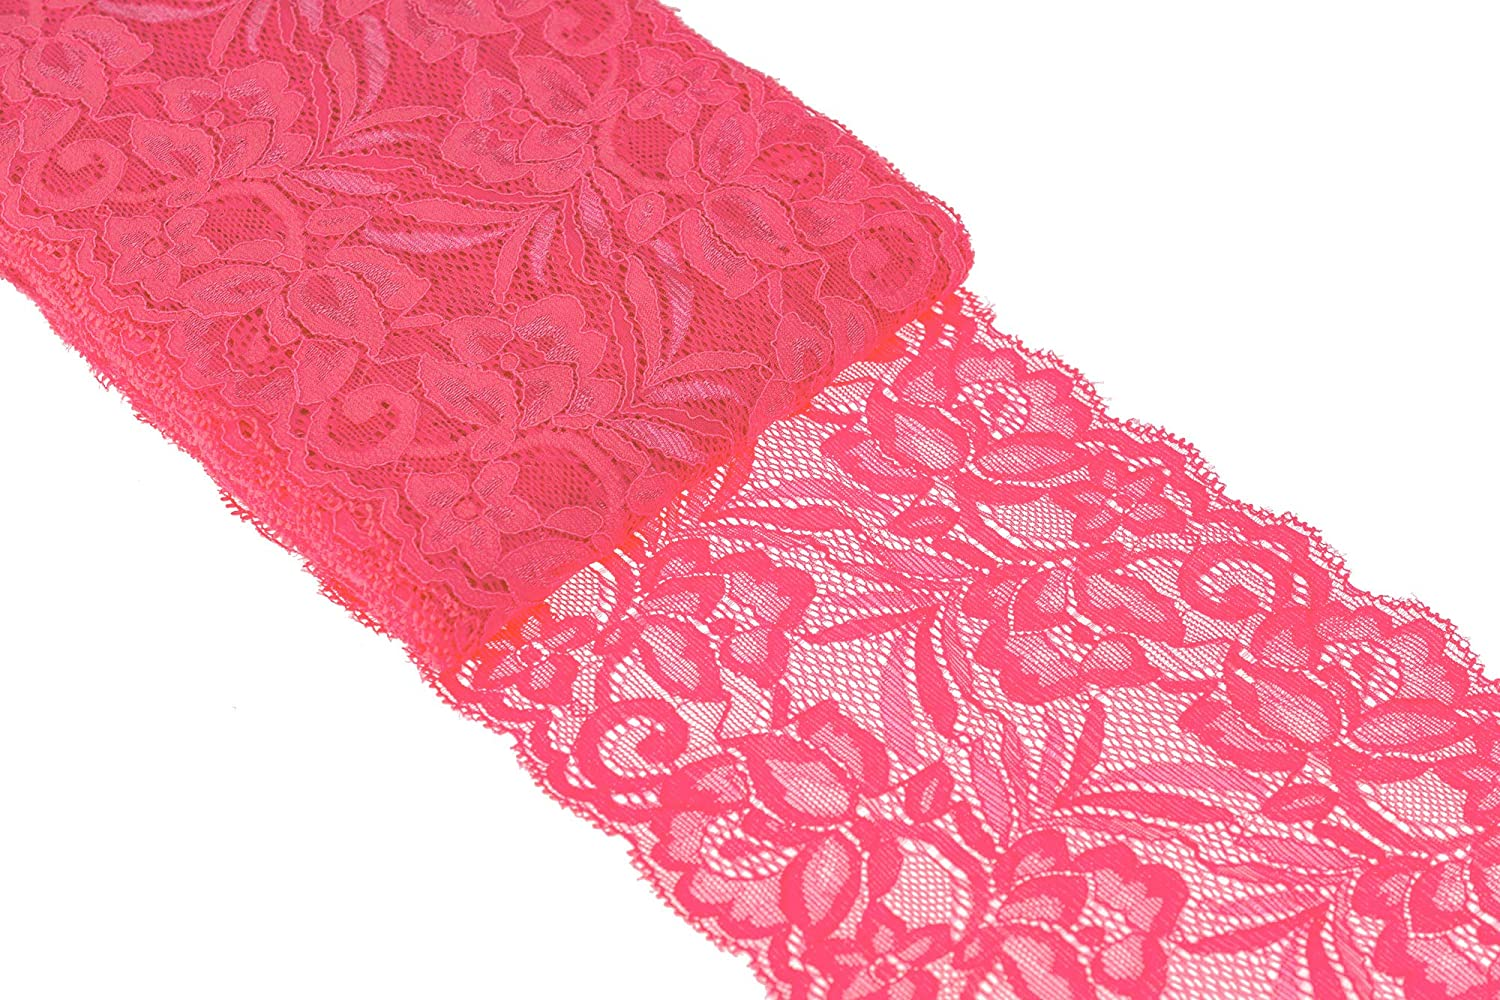 Red ATRibbons 10 Yards 6 Inch Wide Elastic Lace Trim Floral Pattern Lace Ribbon for Garment,Crafts and Gift Wrapping